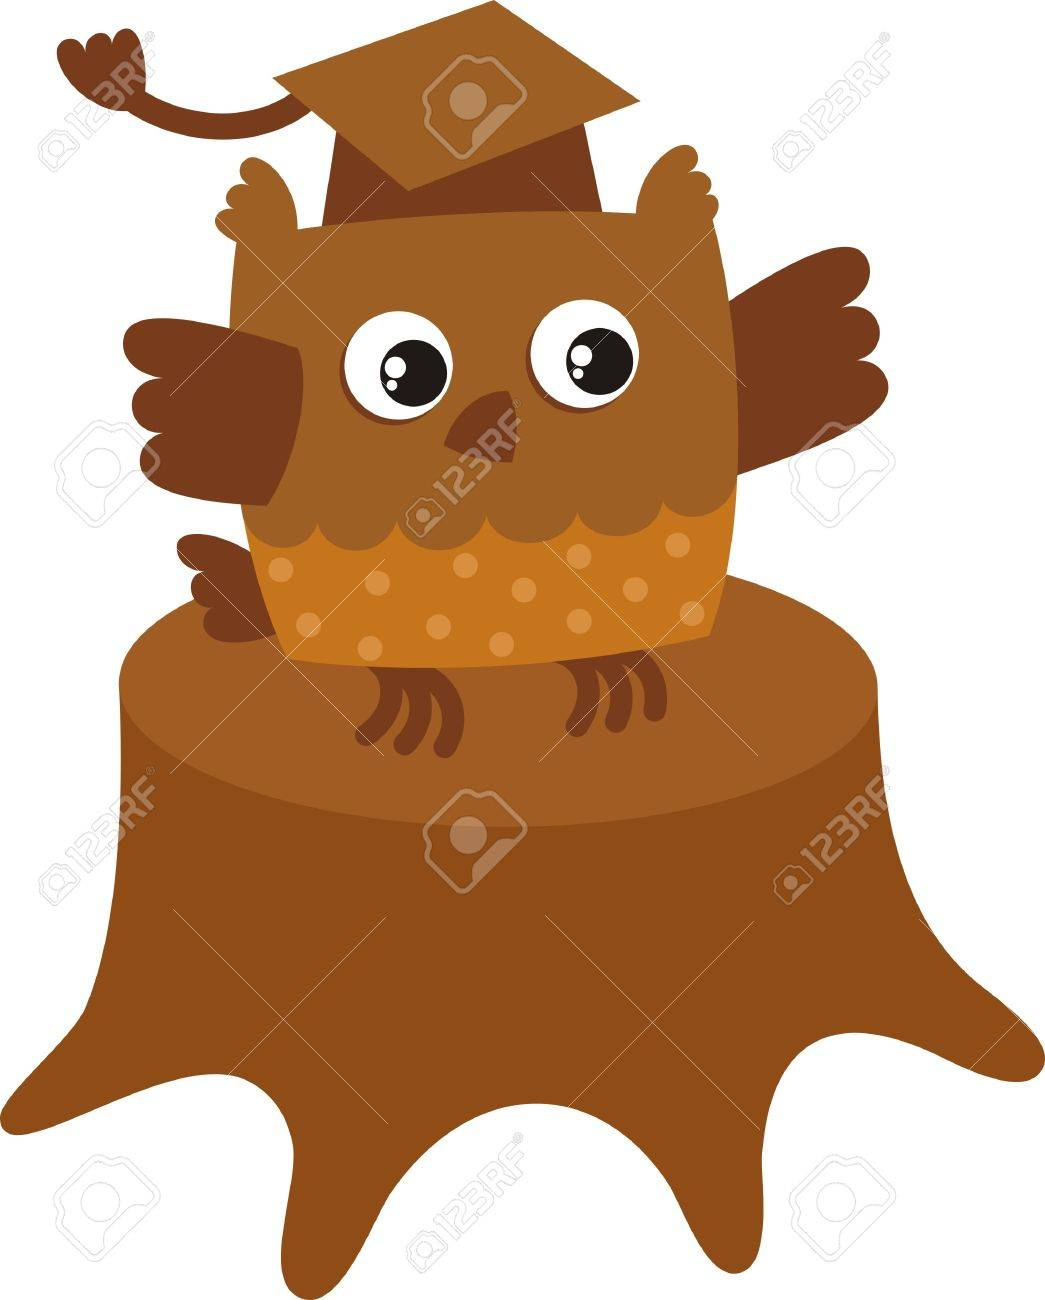 Bird Owl The Symbol Of Knowledge And Wisdom Royalty Free Cliparts